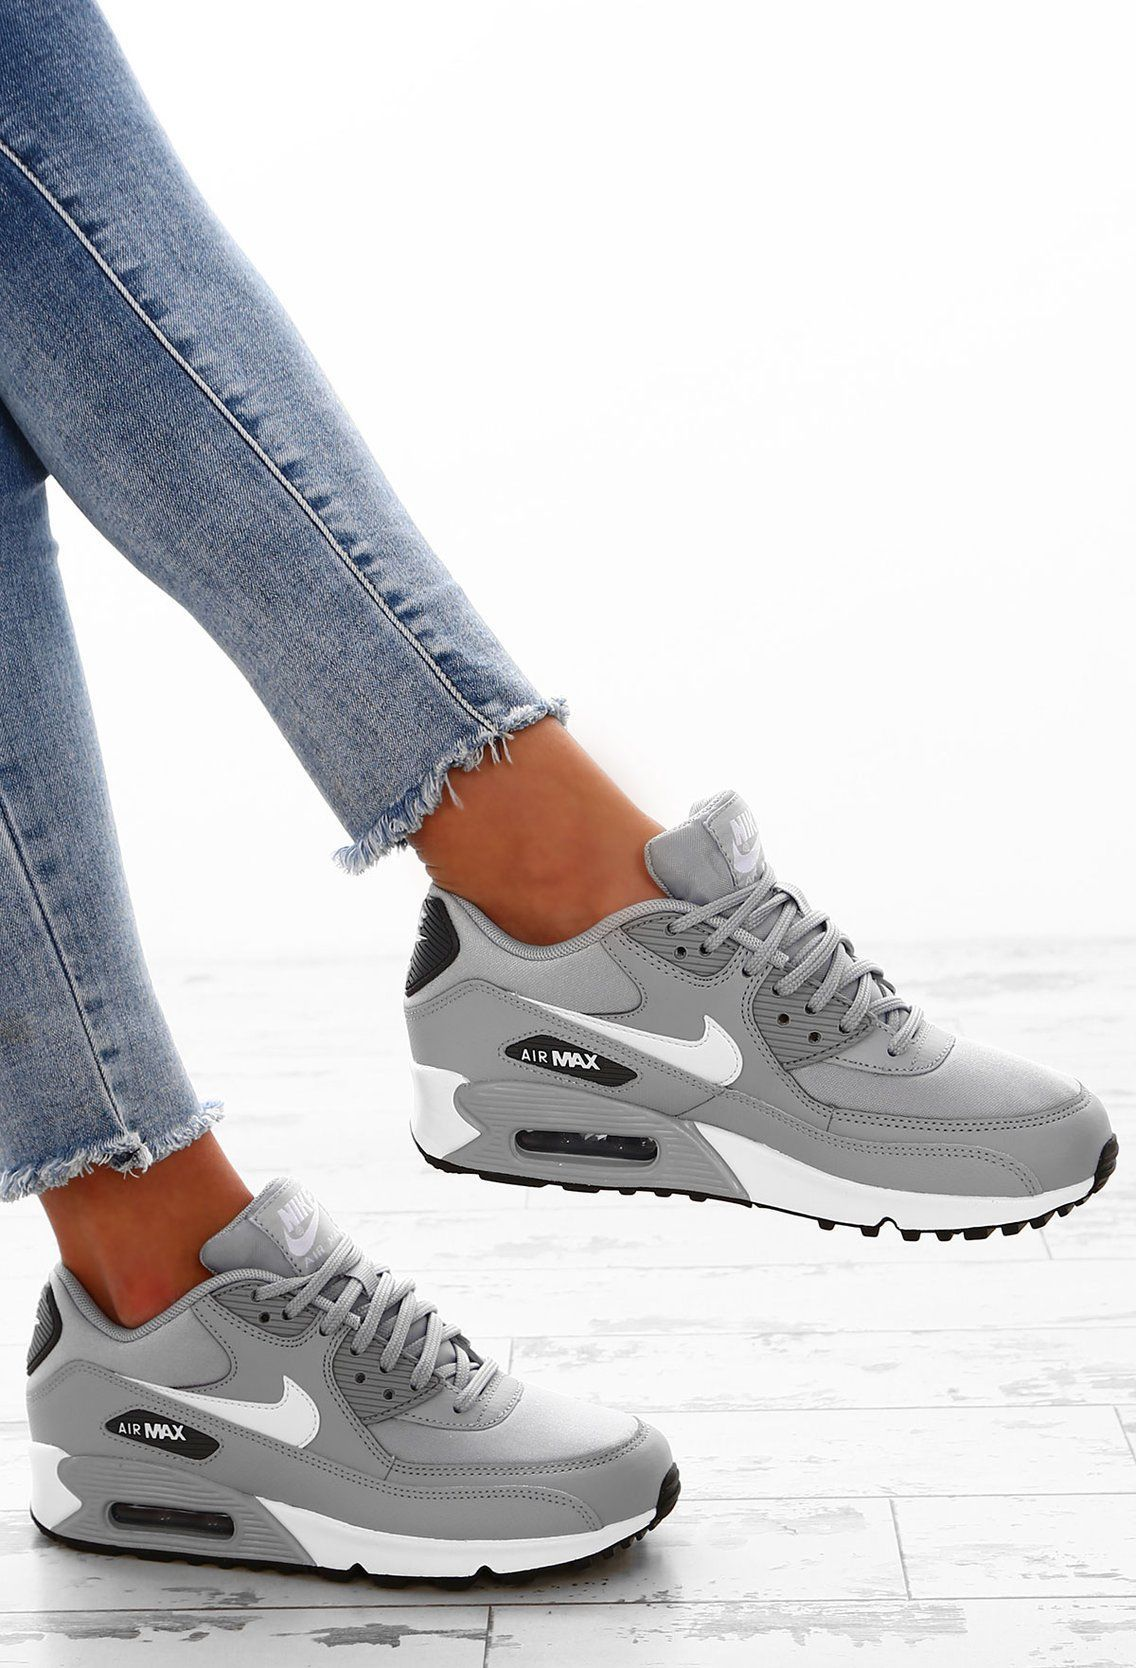 Nike Air Max 90 Grey Trainers#air #grey #max #nike #trainers ...